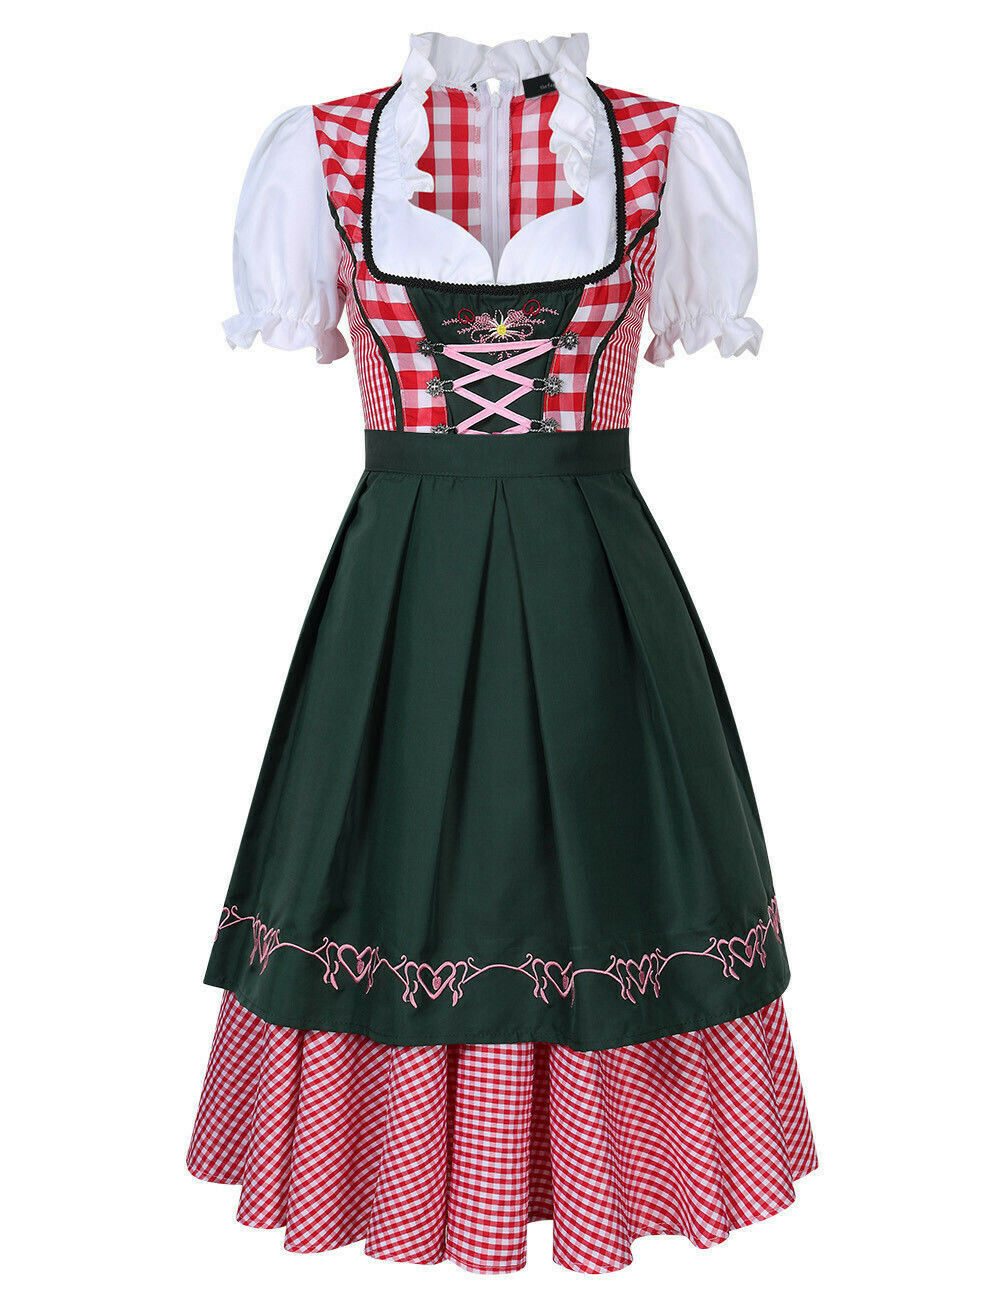 Oktoberfest Costume German Bavarian Traditional Dirndl Beer Maid Costumes